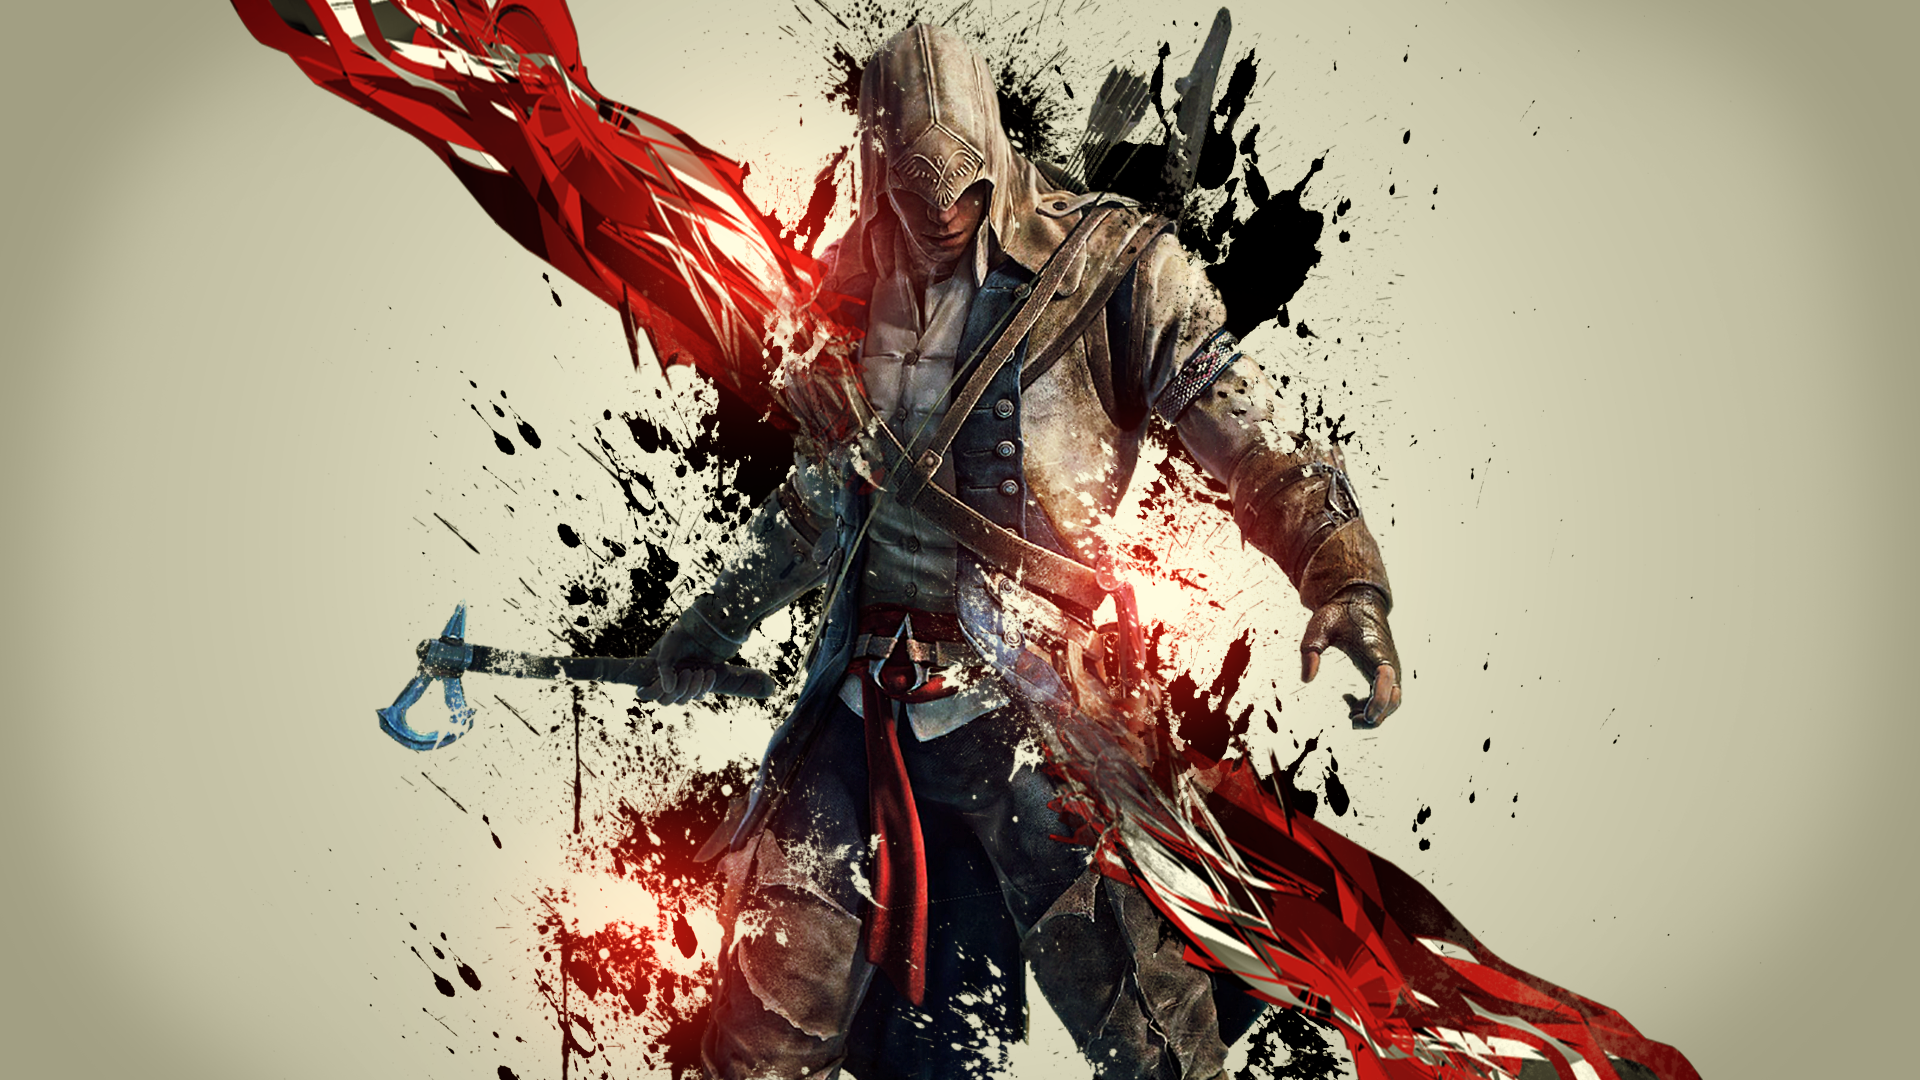 the Collection Assassins Creed Video Game Assassins Creed III 320623 1920x1080